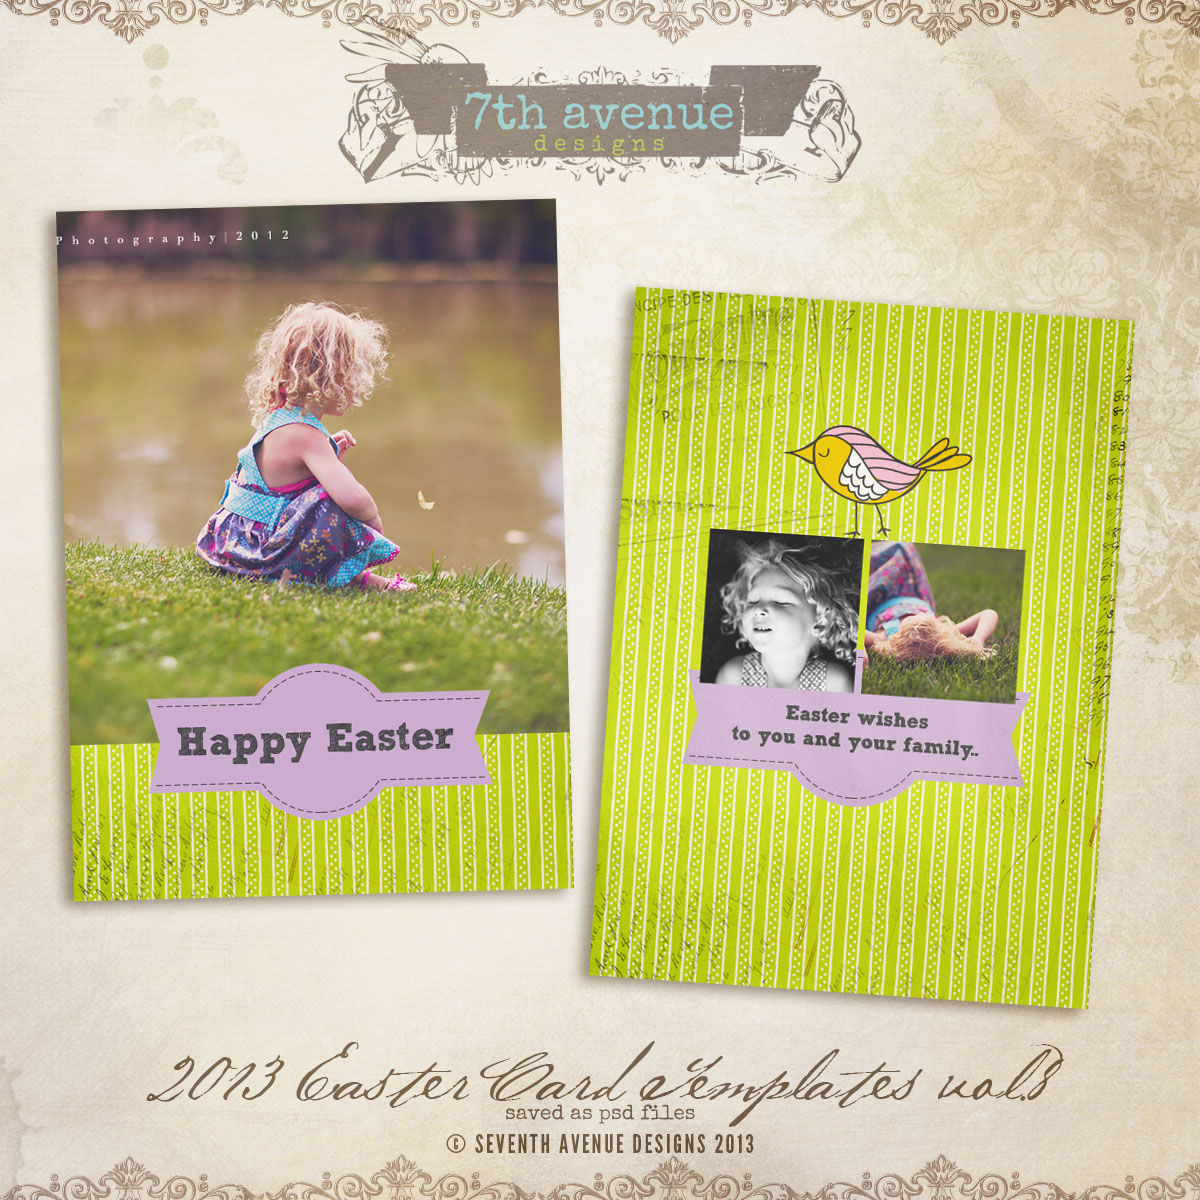 2013 Easter Card vol.8